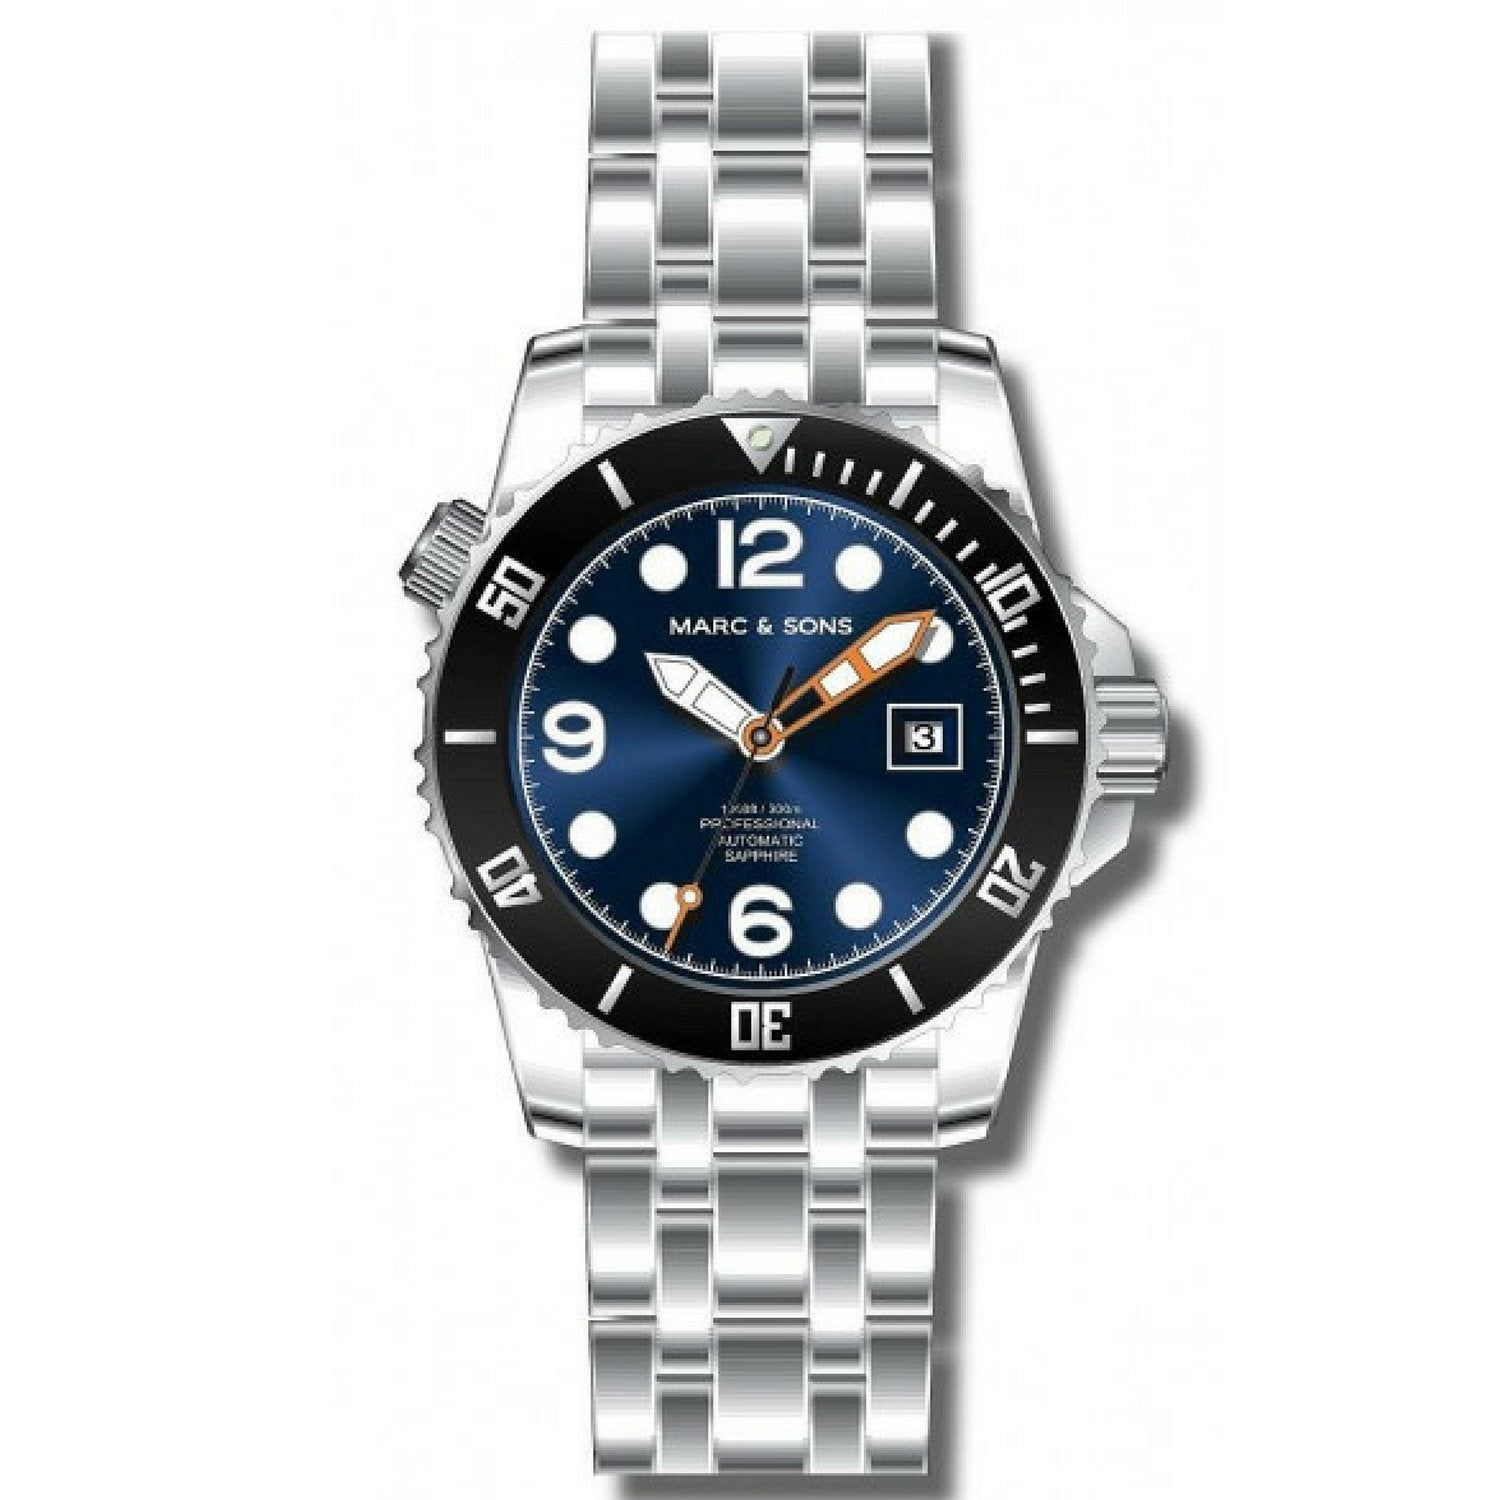 MARC & SONS 300M Professional automatic Diver watch MSD-034